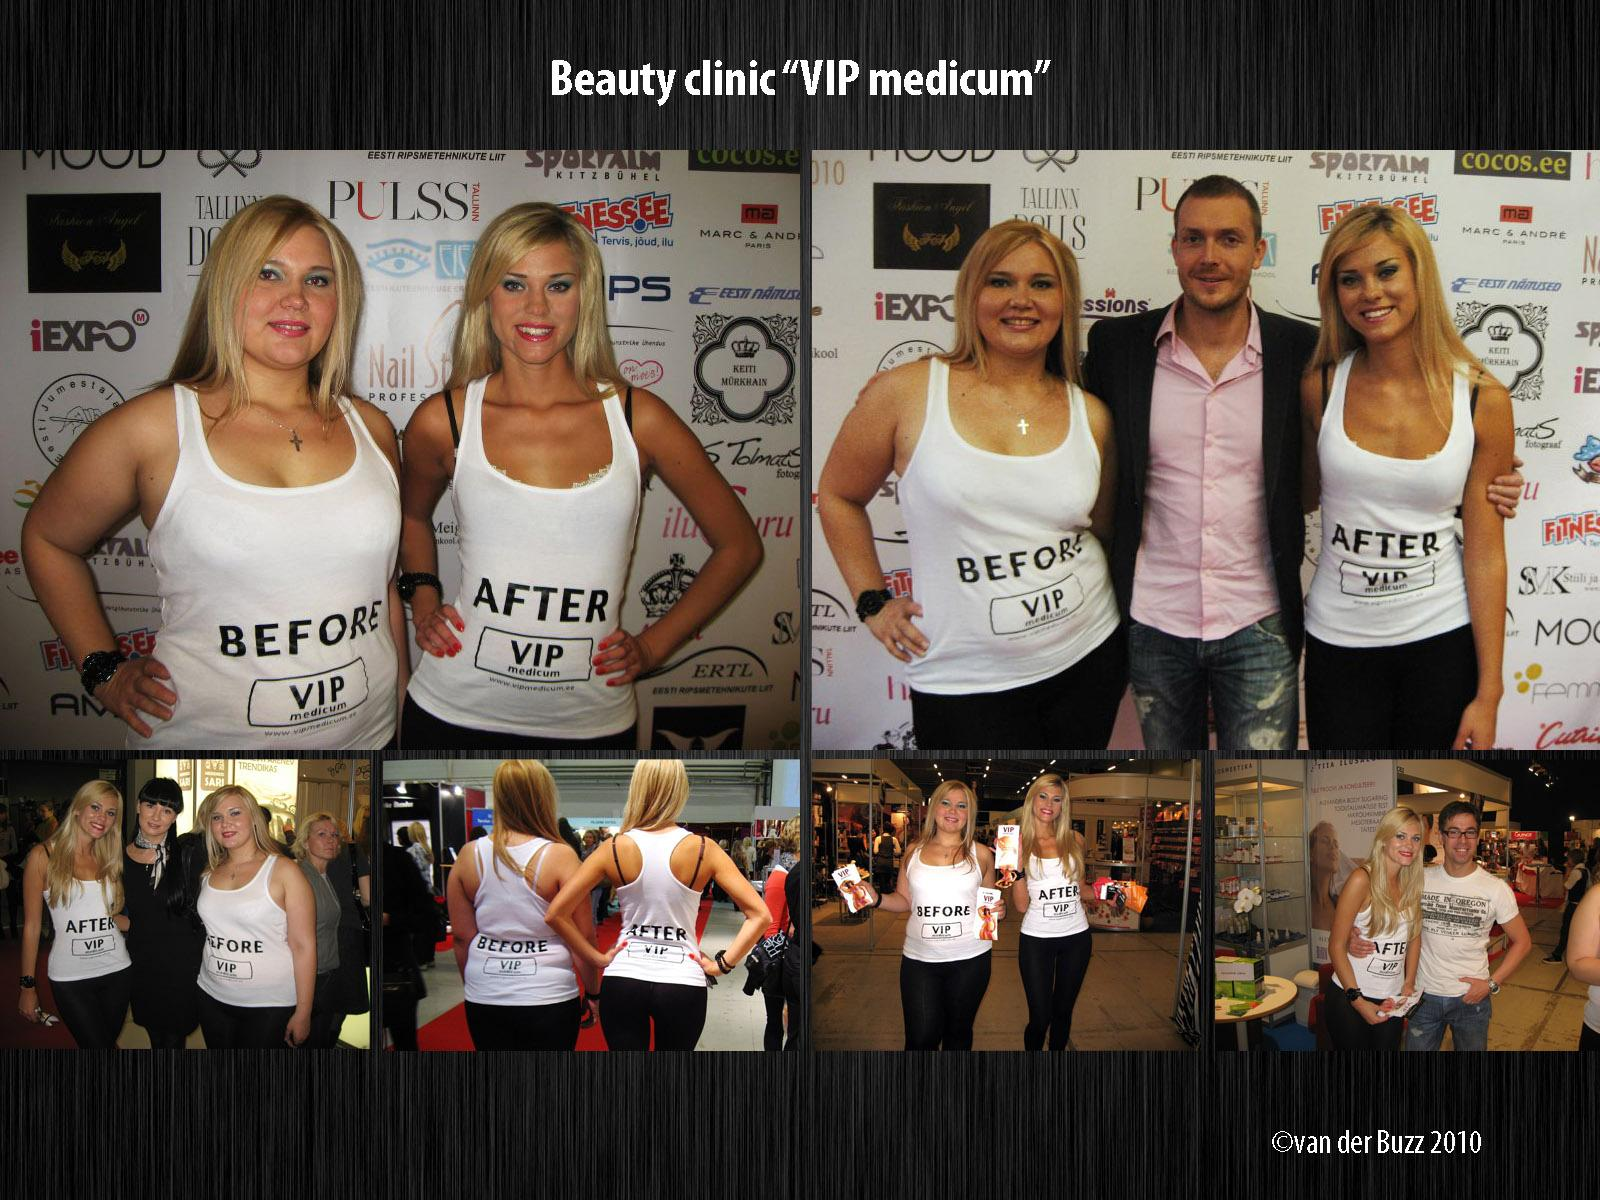 VIP Medicum Ambient Ad -  Before and After Hostesses